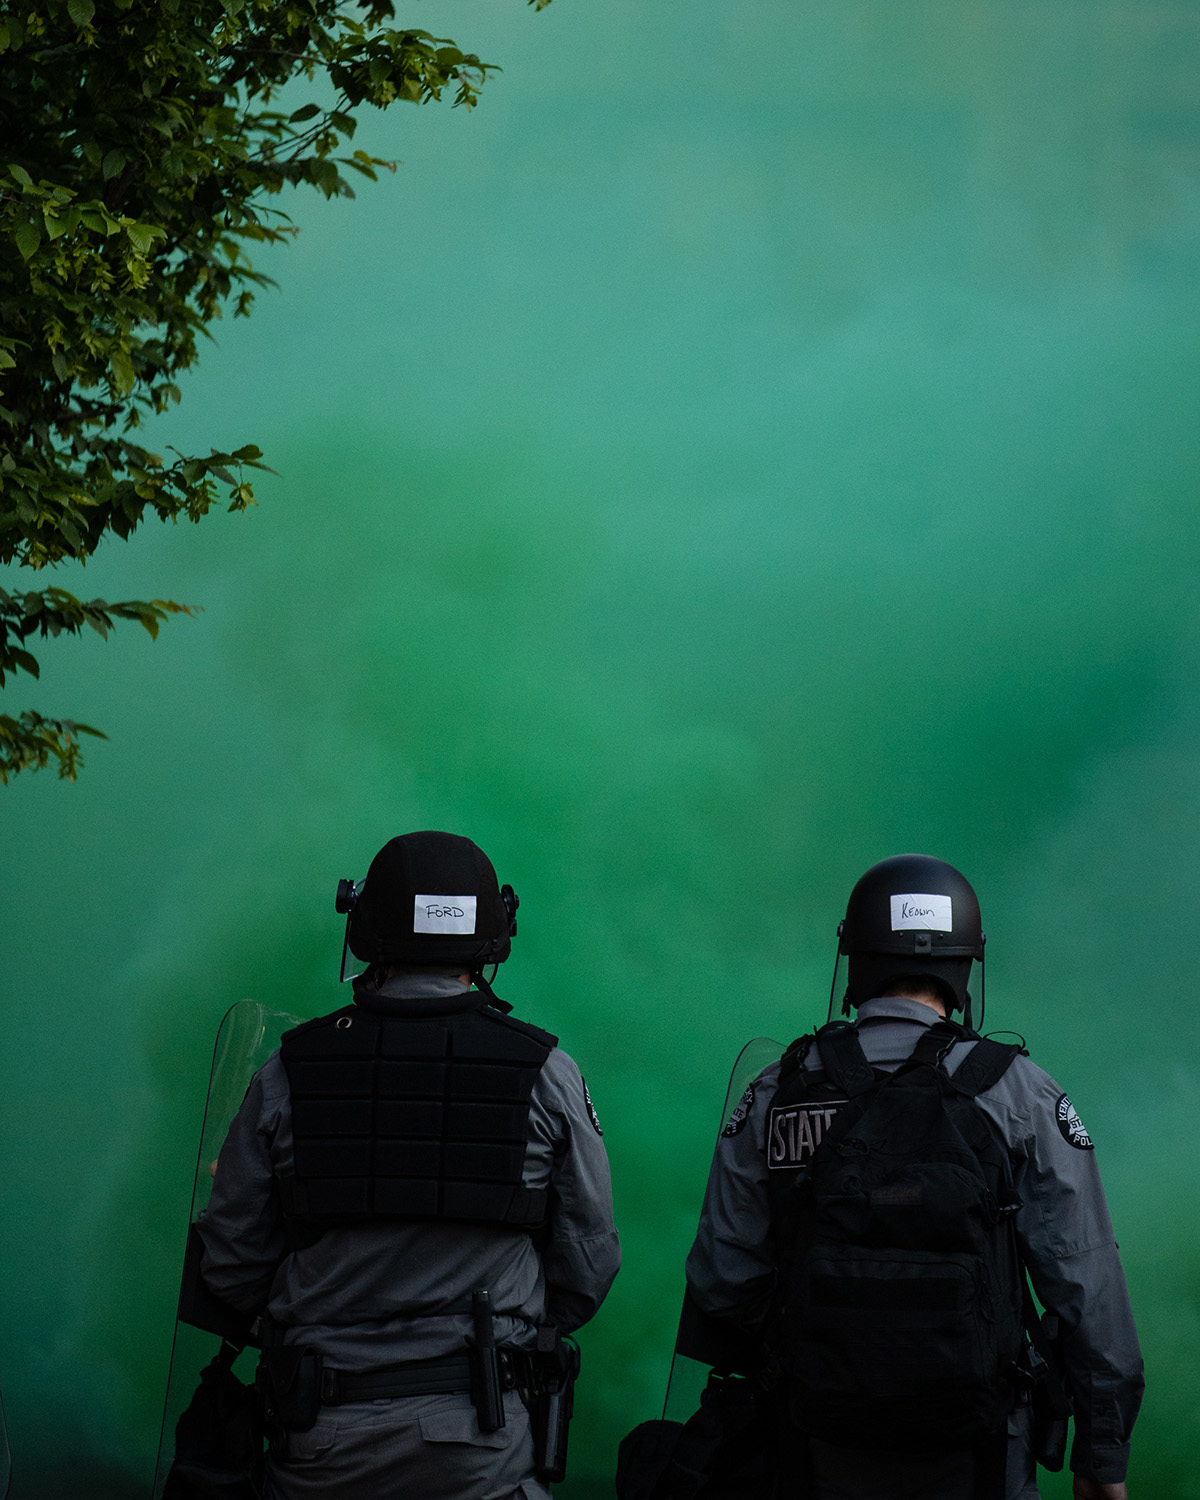 Two police officers stand behind a green-colored gas.